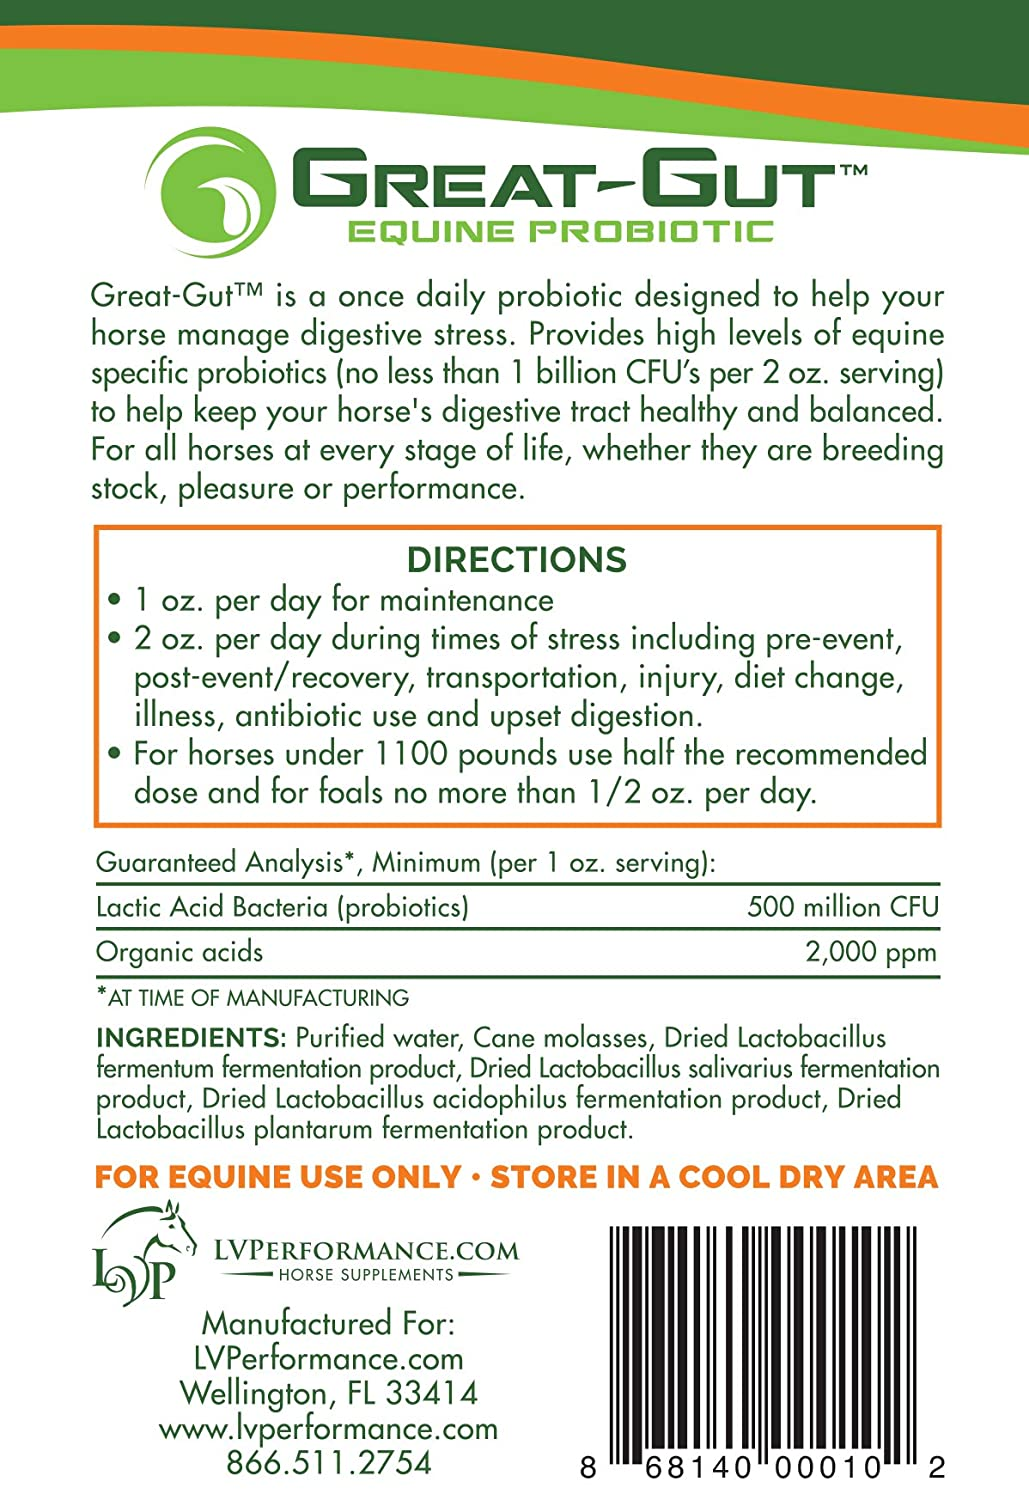 Amazon.com: great-gut Equino Specific Probiotic: Mascotas